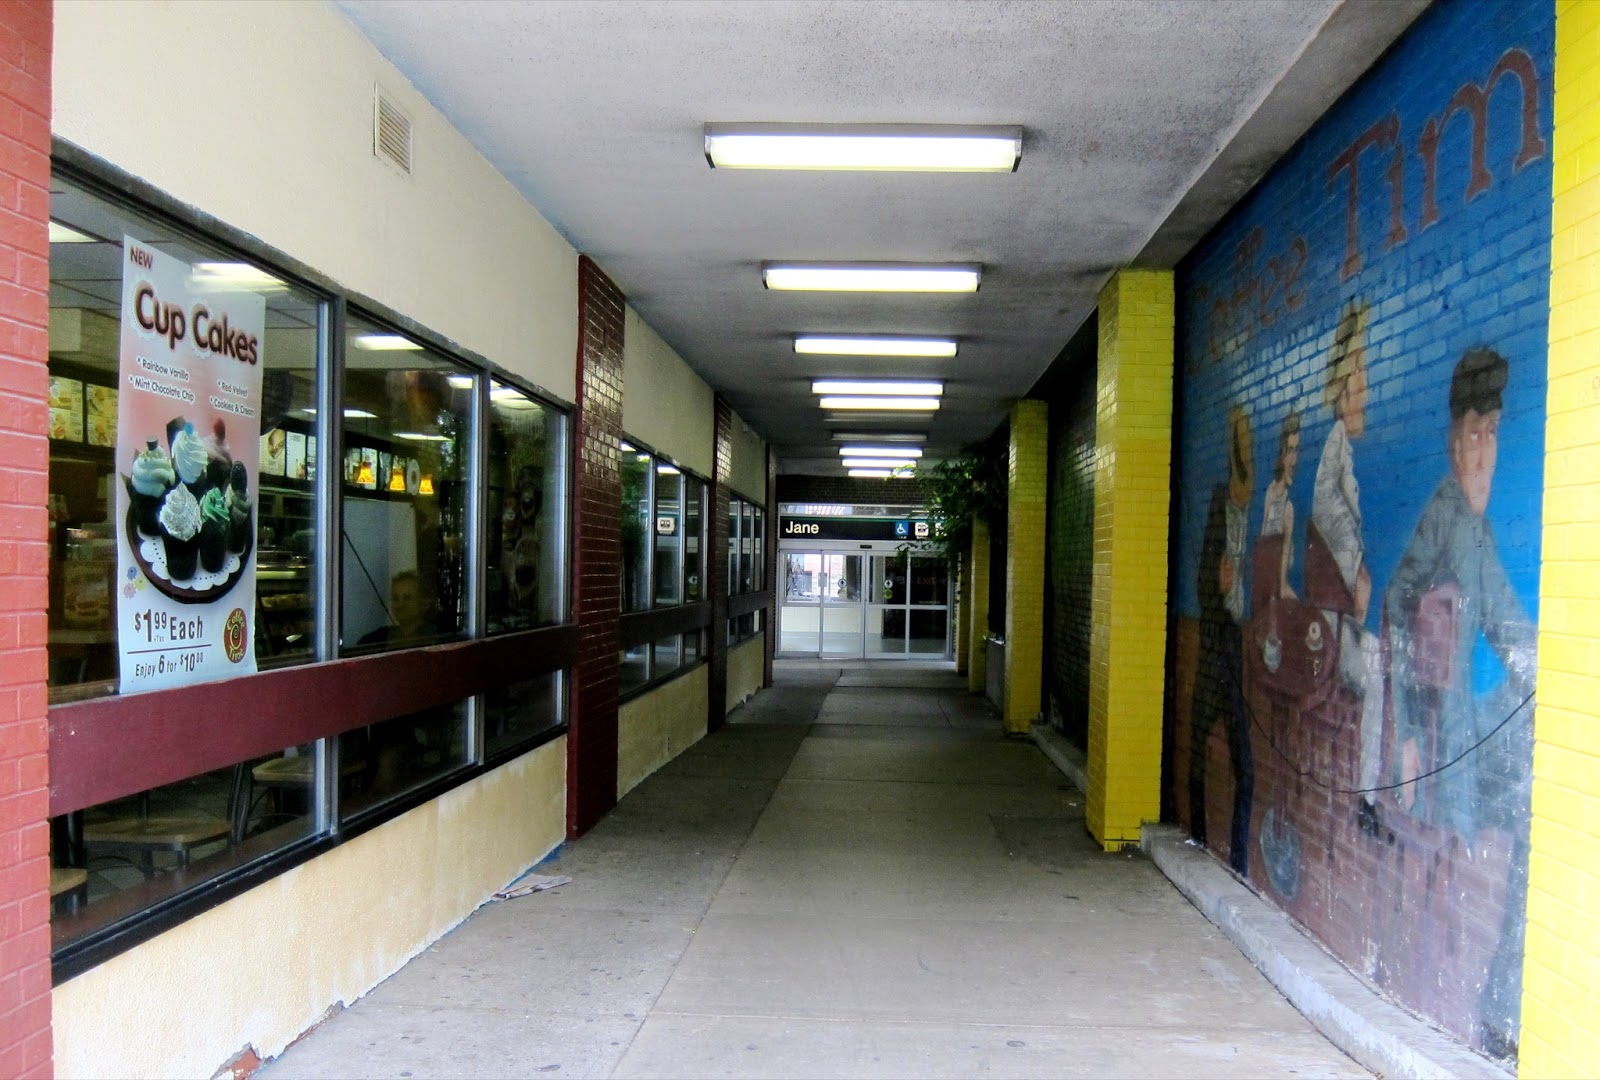 Jane station walkway entrance from Bloor St.